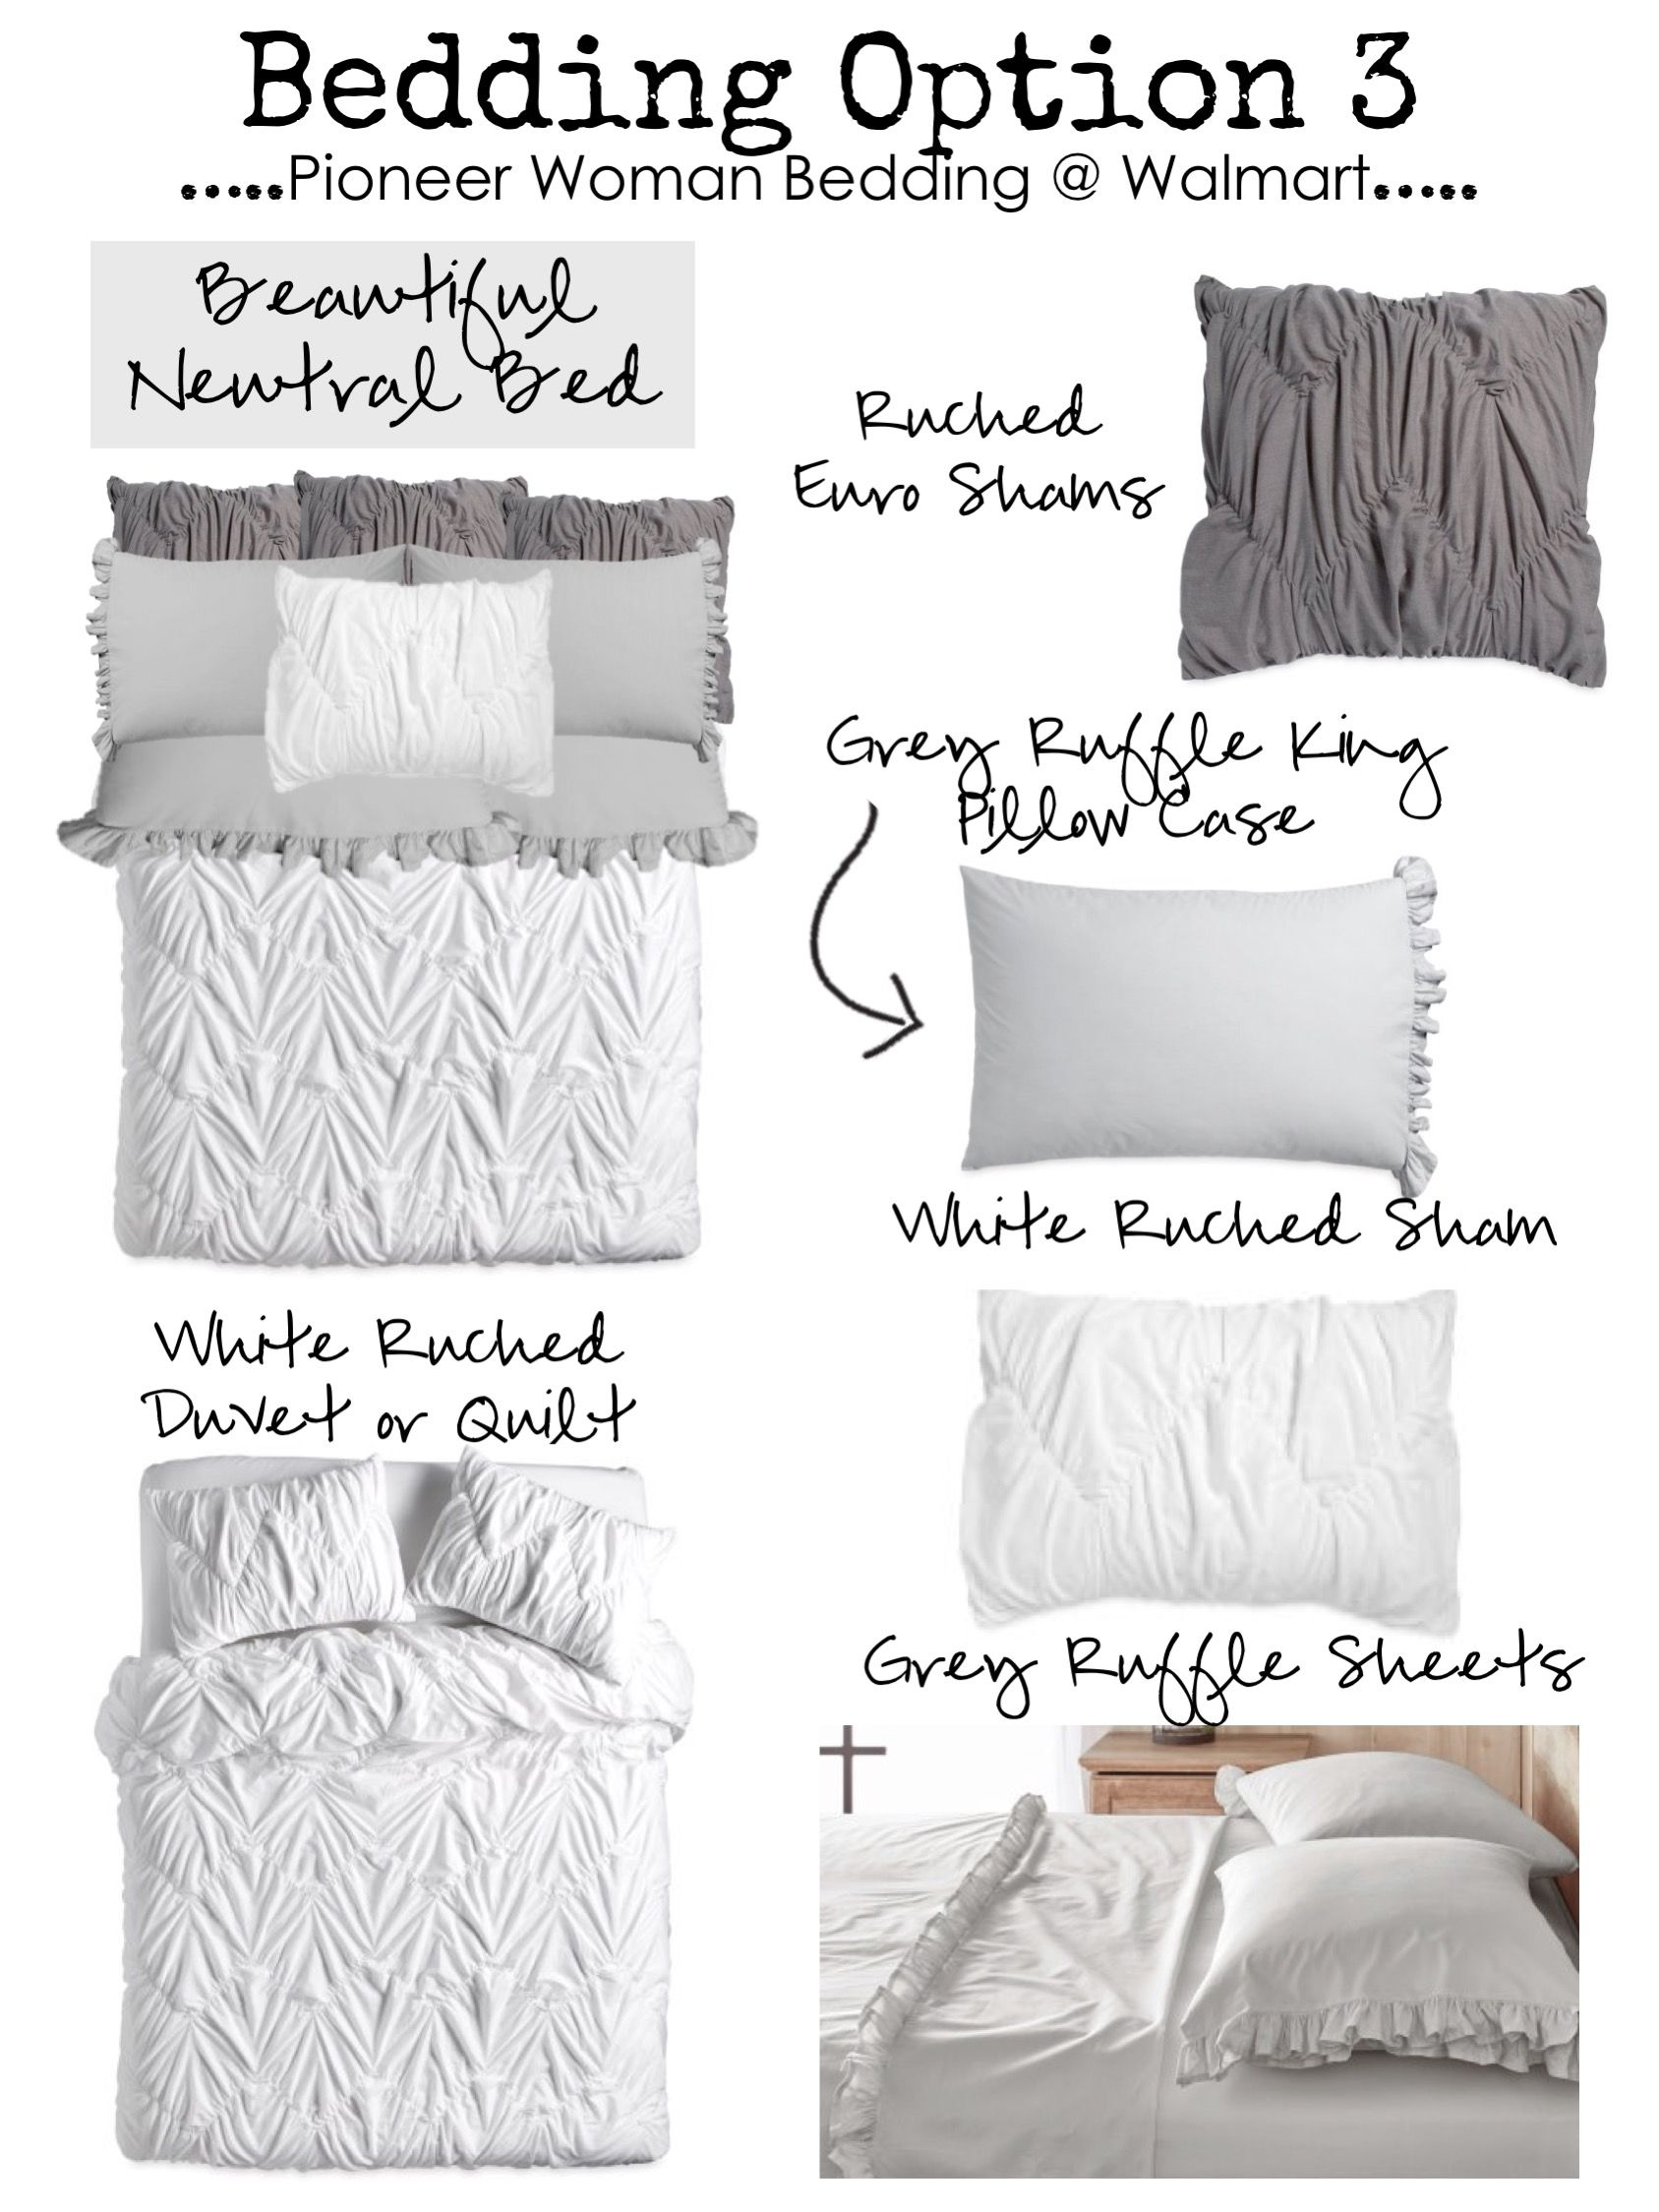 New Budget Friendly Farmhouse Bedding By The Pioneer Woman Beautiful Affordable Exclusively Walma Walmart Bedding Farmhouse Bedding Farmhouse Style Bedding